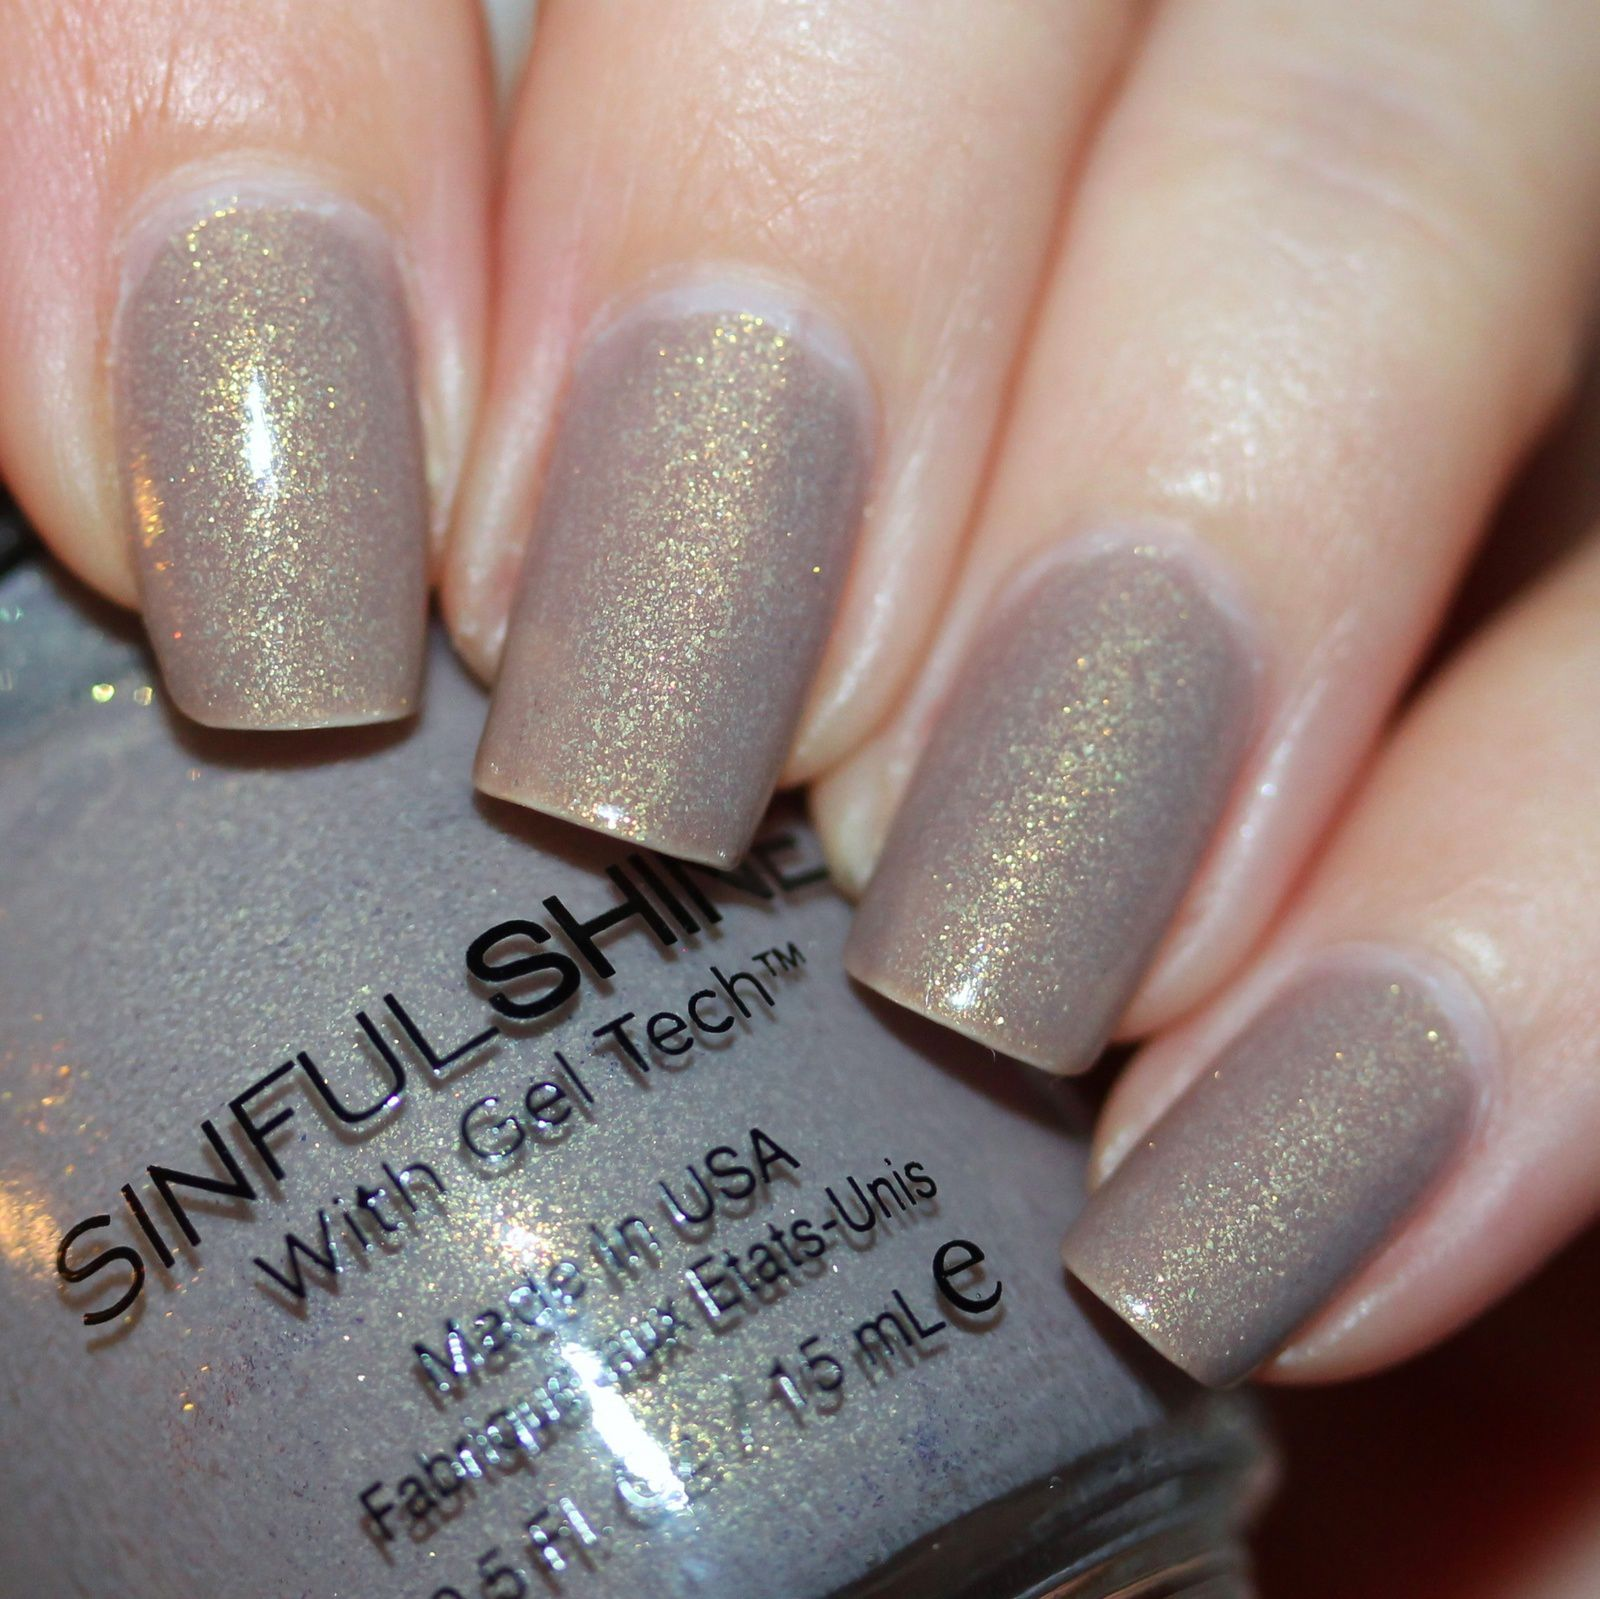 Essie Protein Base Coat / Sinful Colors Prosecco / Poshe Top Coat